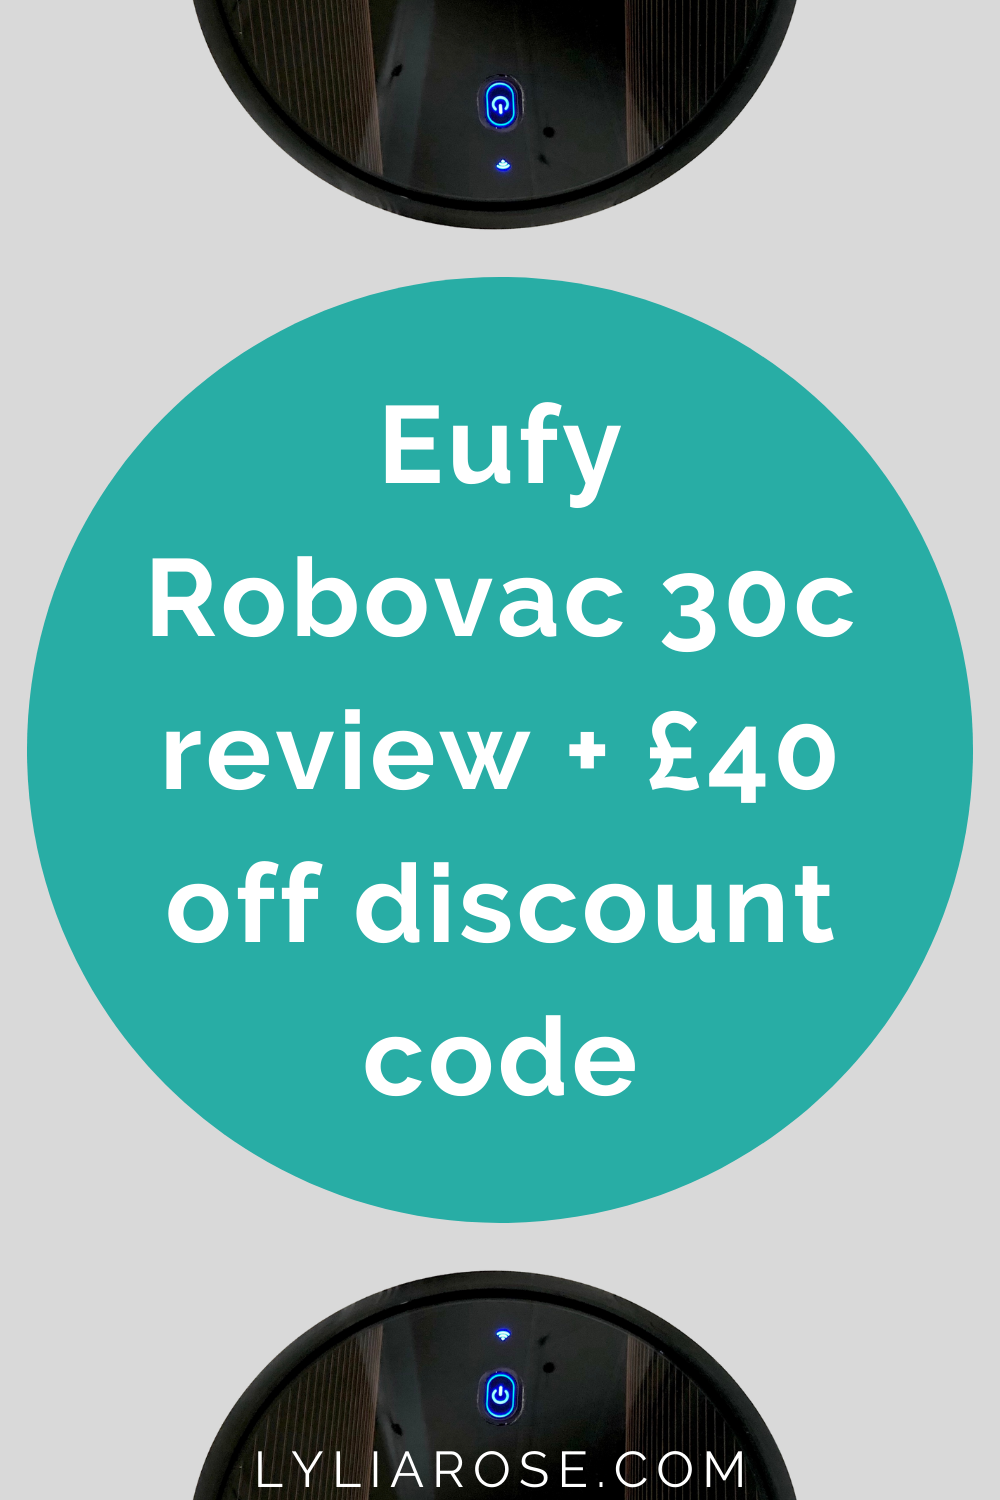 Eufy Robovac 30c review + discount code